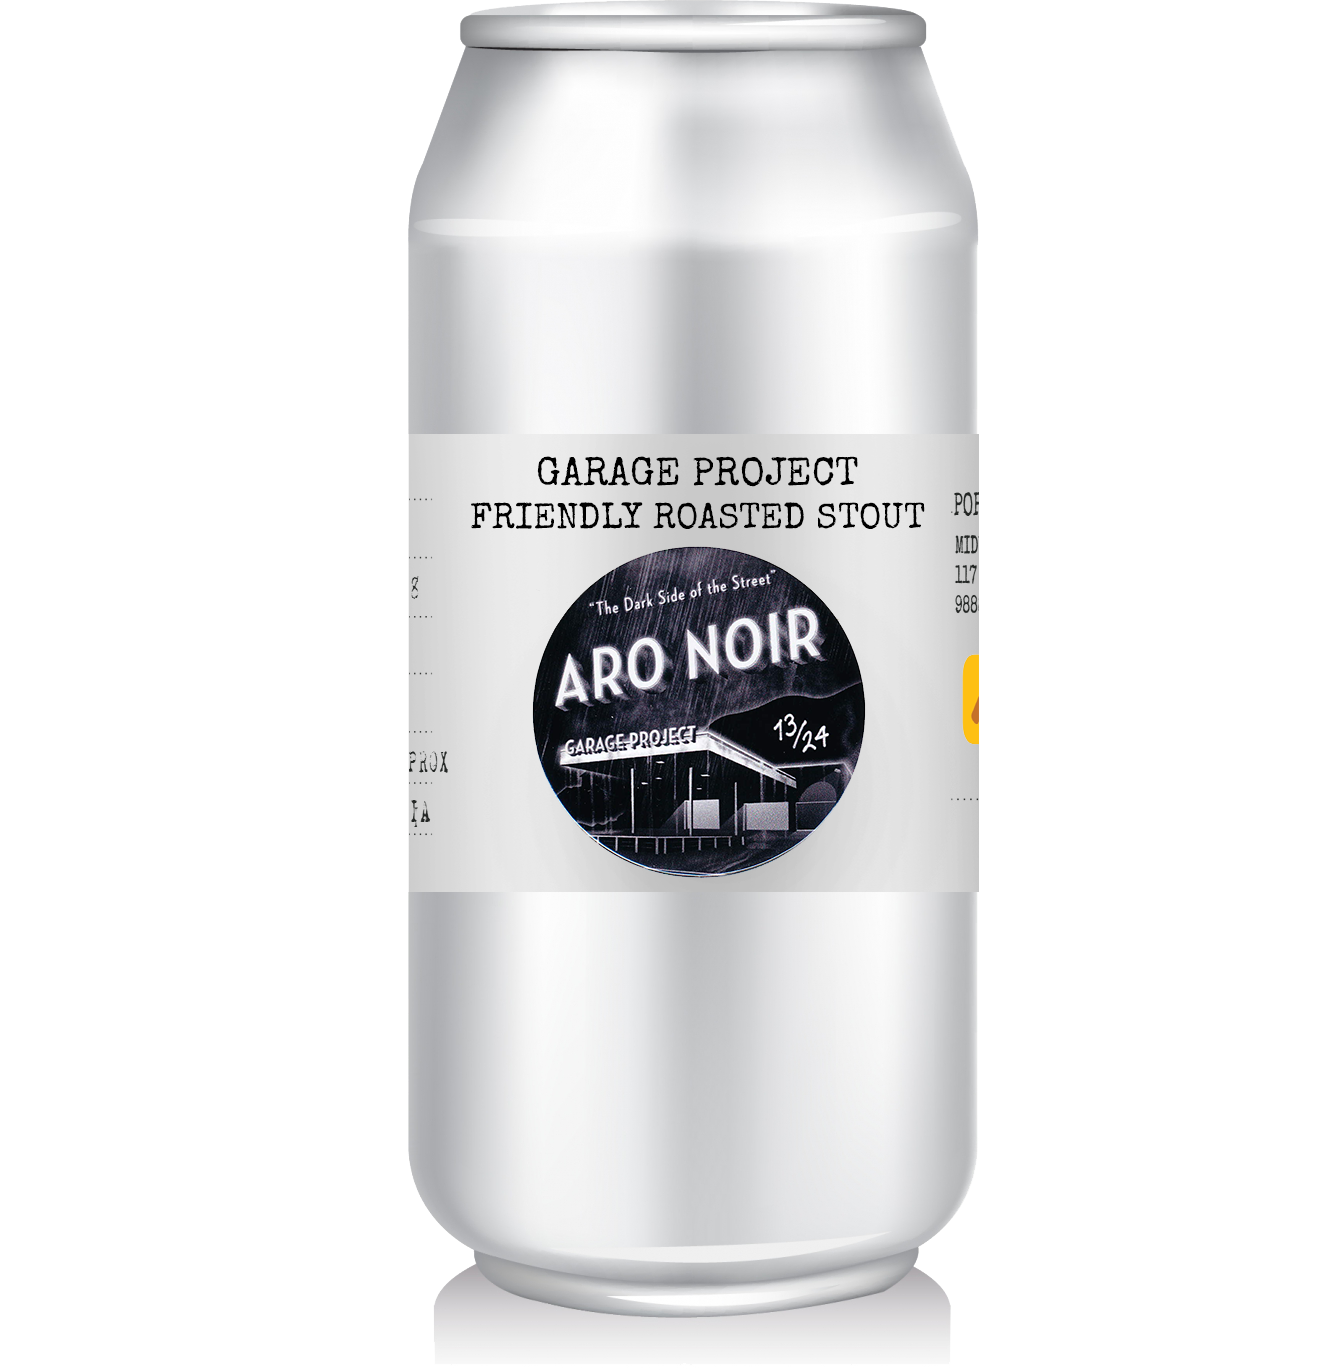 "Garage Project - Aro Noir, Friendly Roasted Stout   We're not quite sure what a ""friendly roasted"" stout is, but it's a stout none the less. Hailing from Garage Project on Aro St in NZ's Wellington, this American style stout is well balanced with English roasted barley and citrusy American hops.  From Garage Project themselves  ""wonderfully friendly stout that leaves your mouth feeling well hugged""  - ok, we'll let the friendly stout description stand."